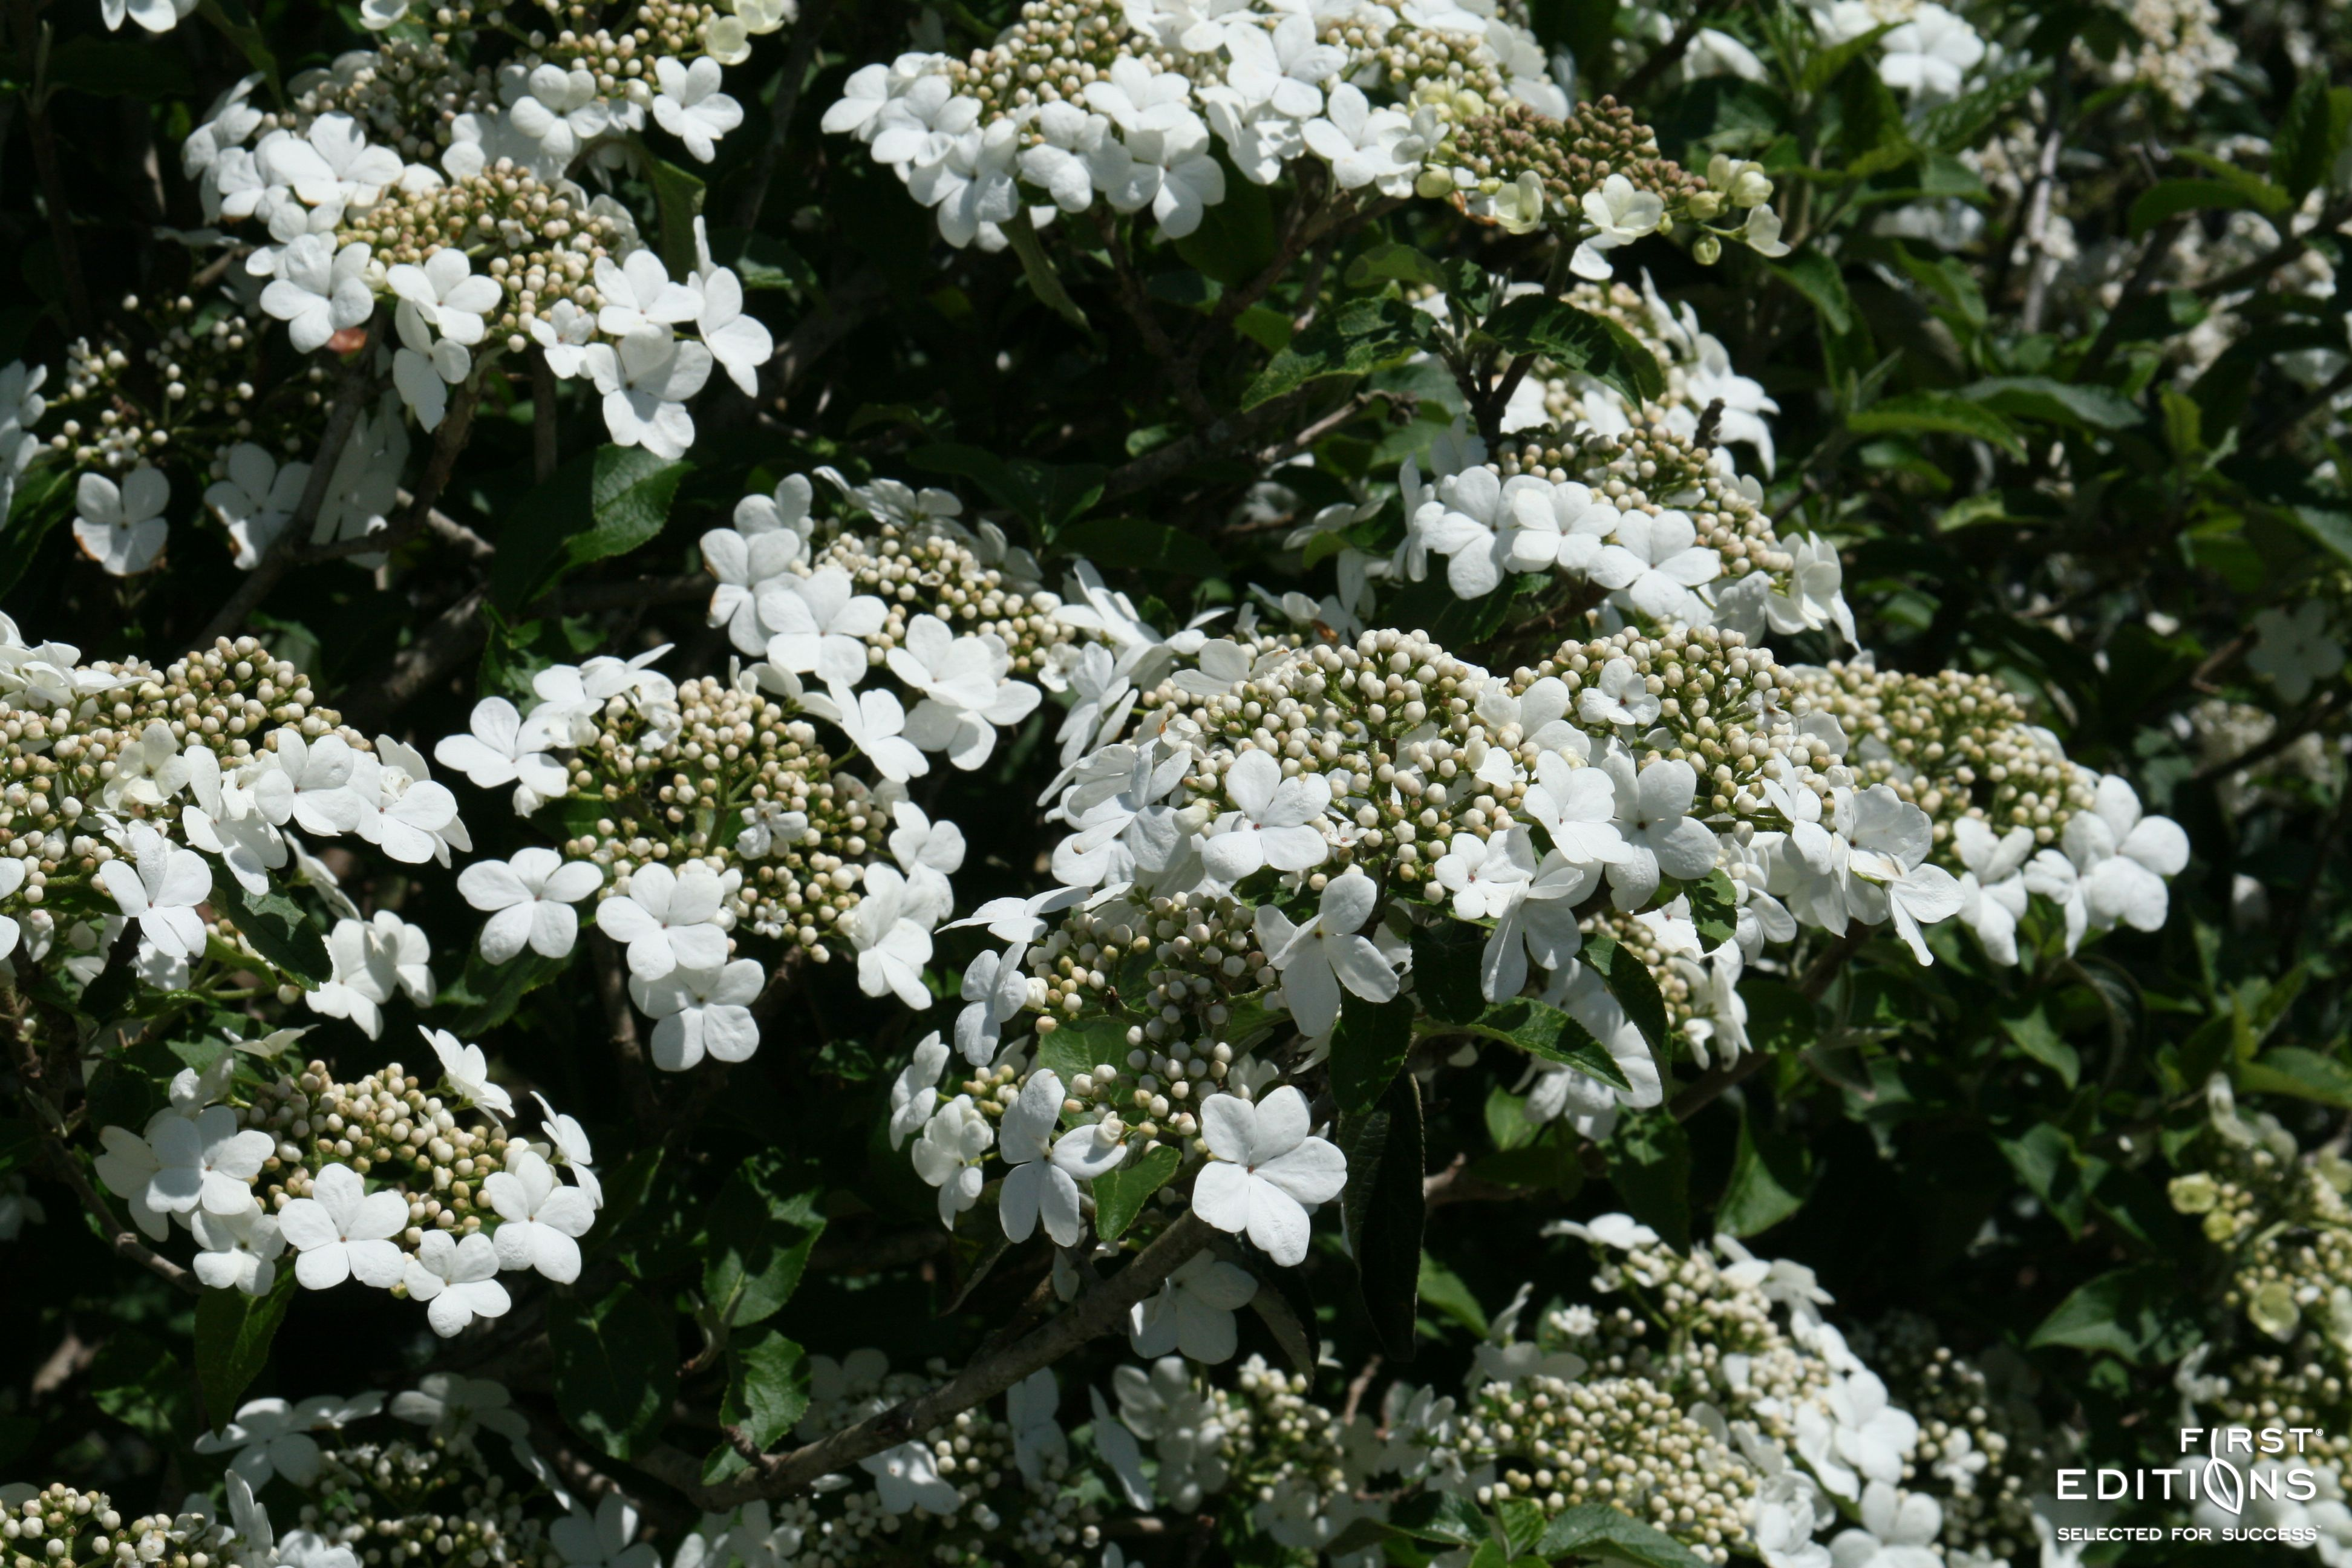 Spring Lace Viburnum Is A Compact Shrub That Takes Your Breath Away